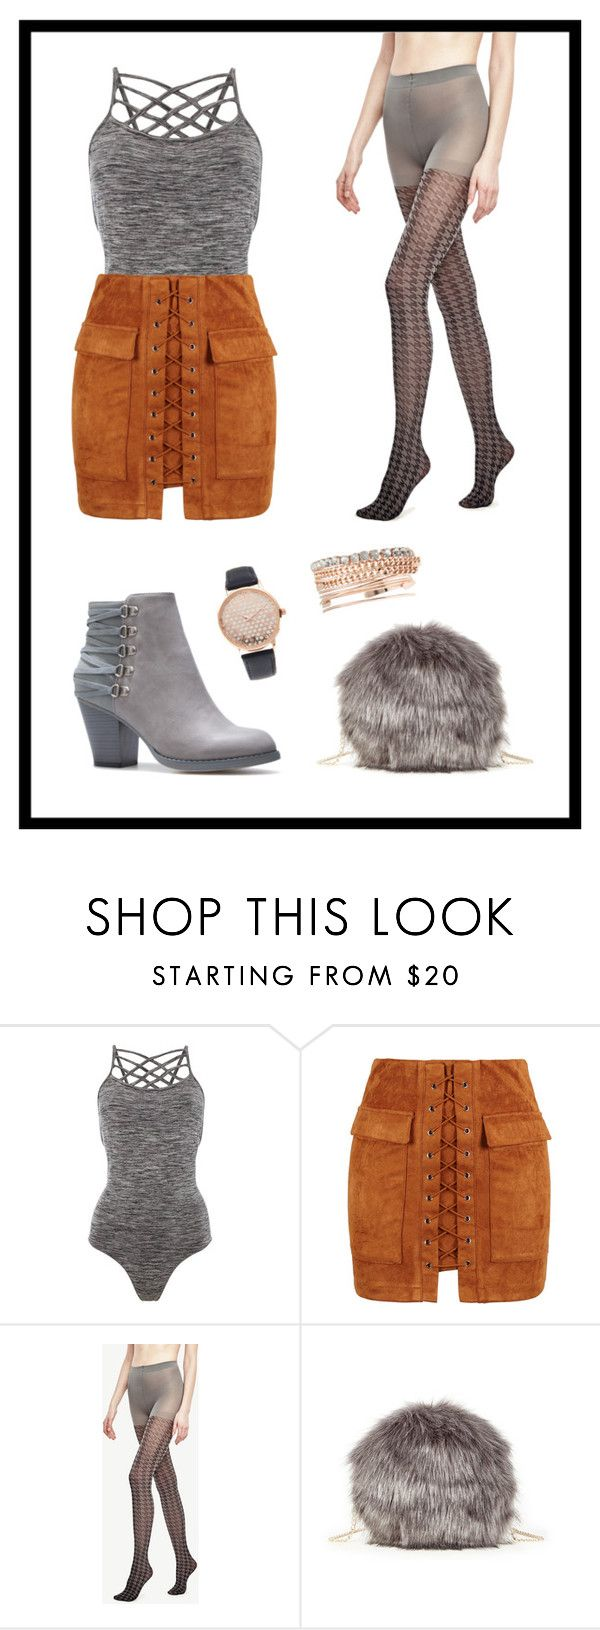 """""""Untitled #98"""" by curlyelizabeth ❤ liked on Polyvore featuring Pepper & Mayne, WithChic, Ann Taylor, Sole Society and Jessica Carlyle"""